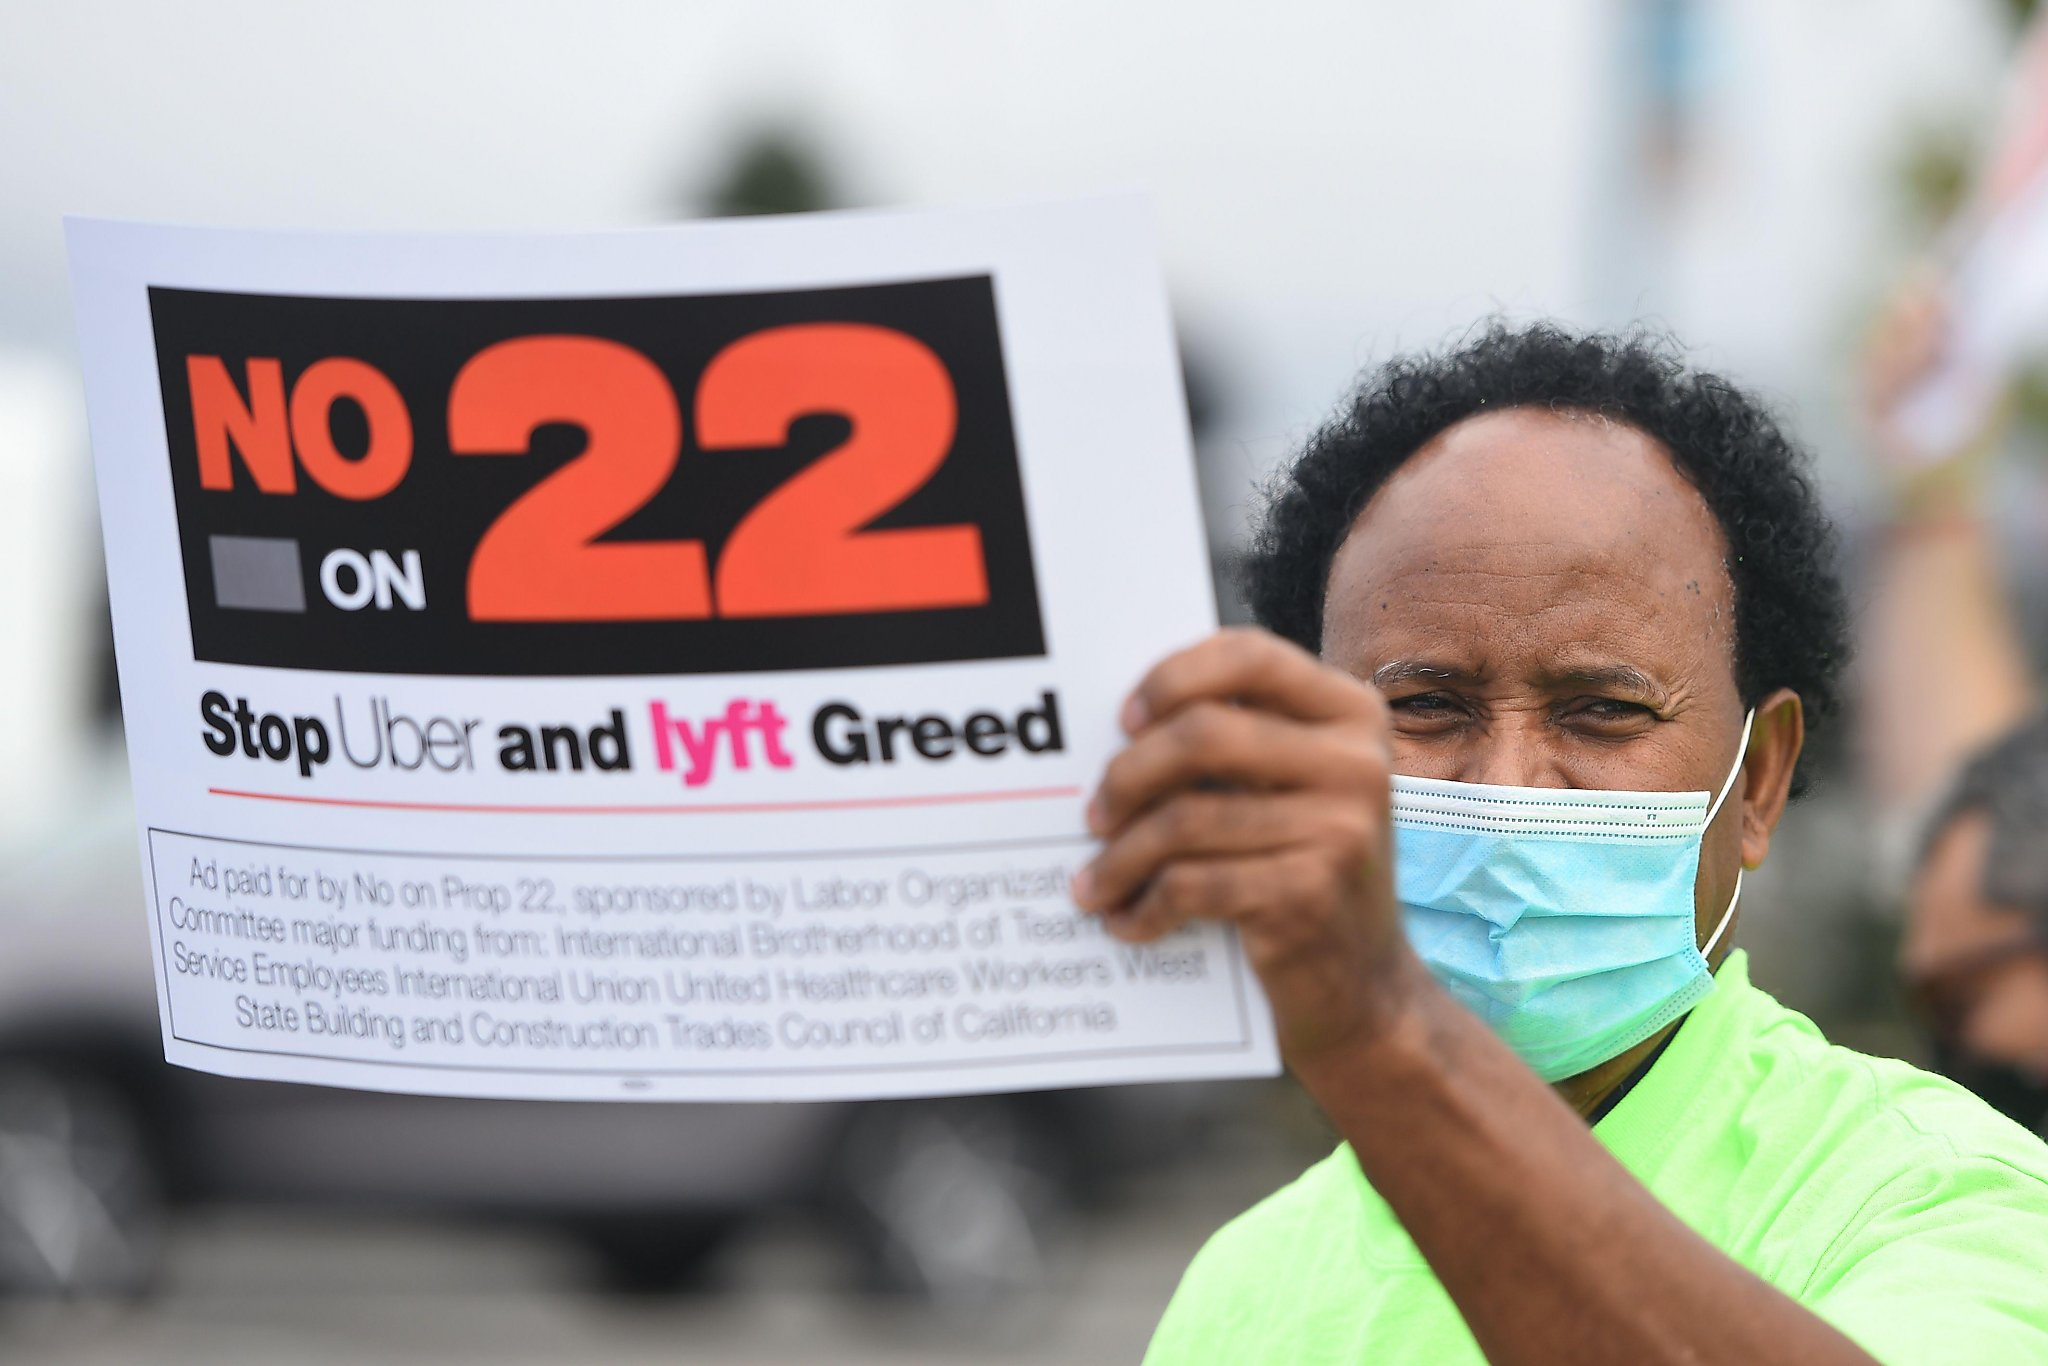 SF rebuked Prop. 22 harder than any other California county